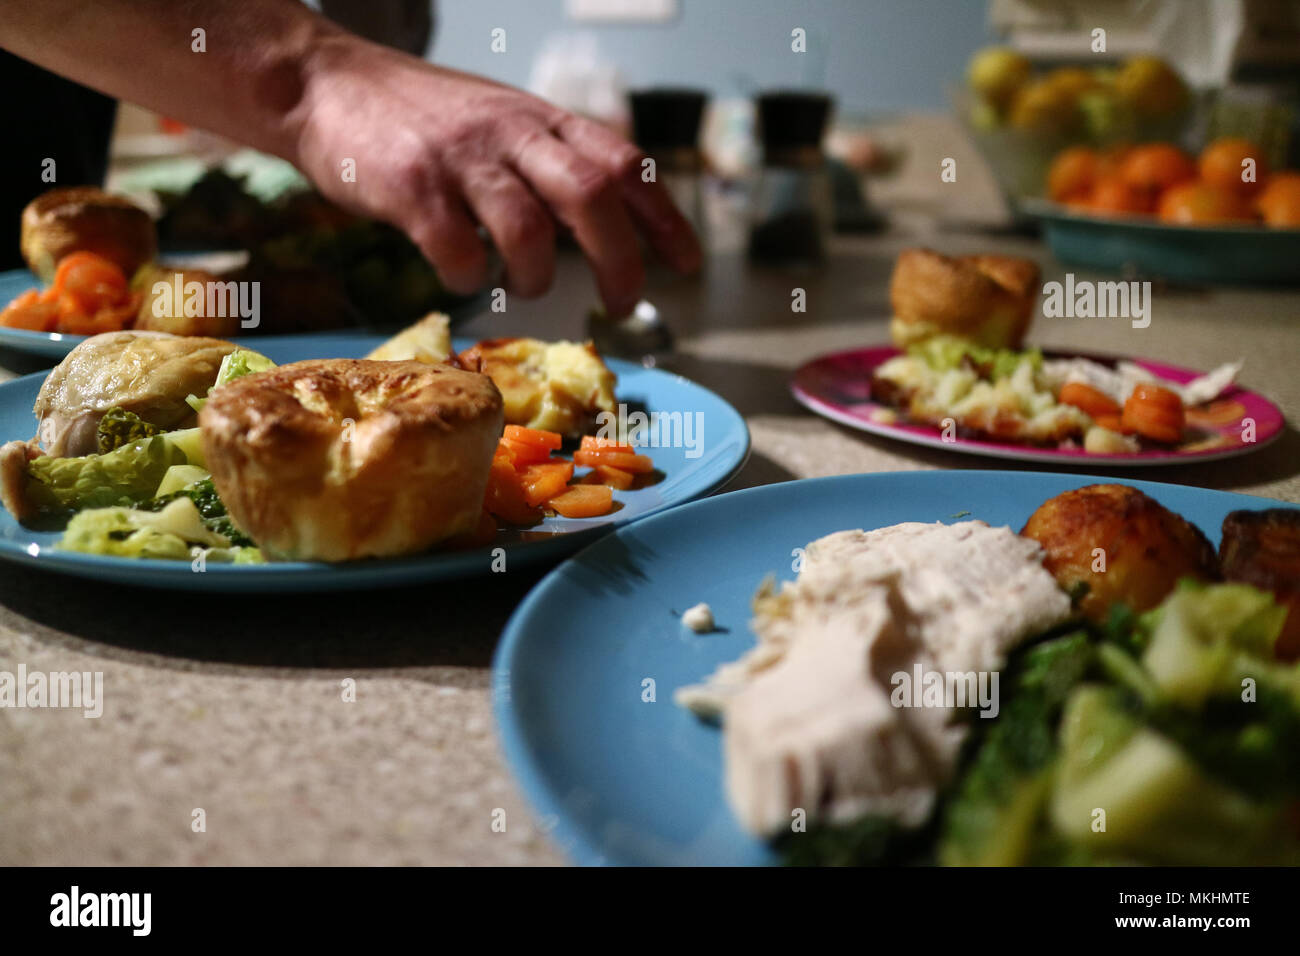 Roast dinners ready to serve while a hand places the final touch. - Stock Image